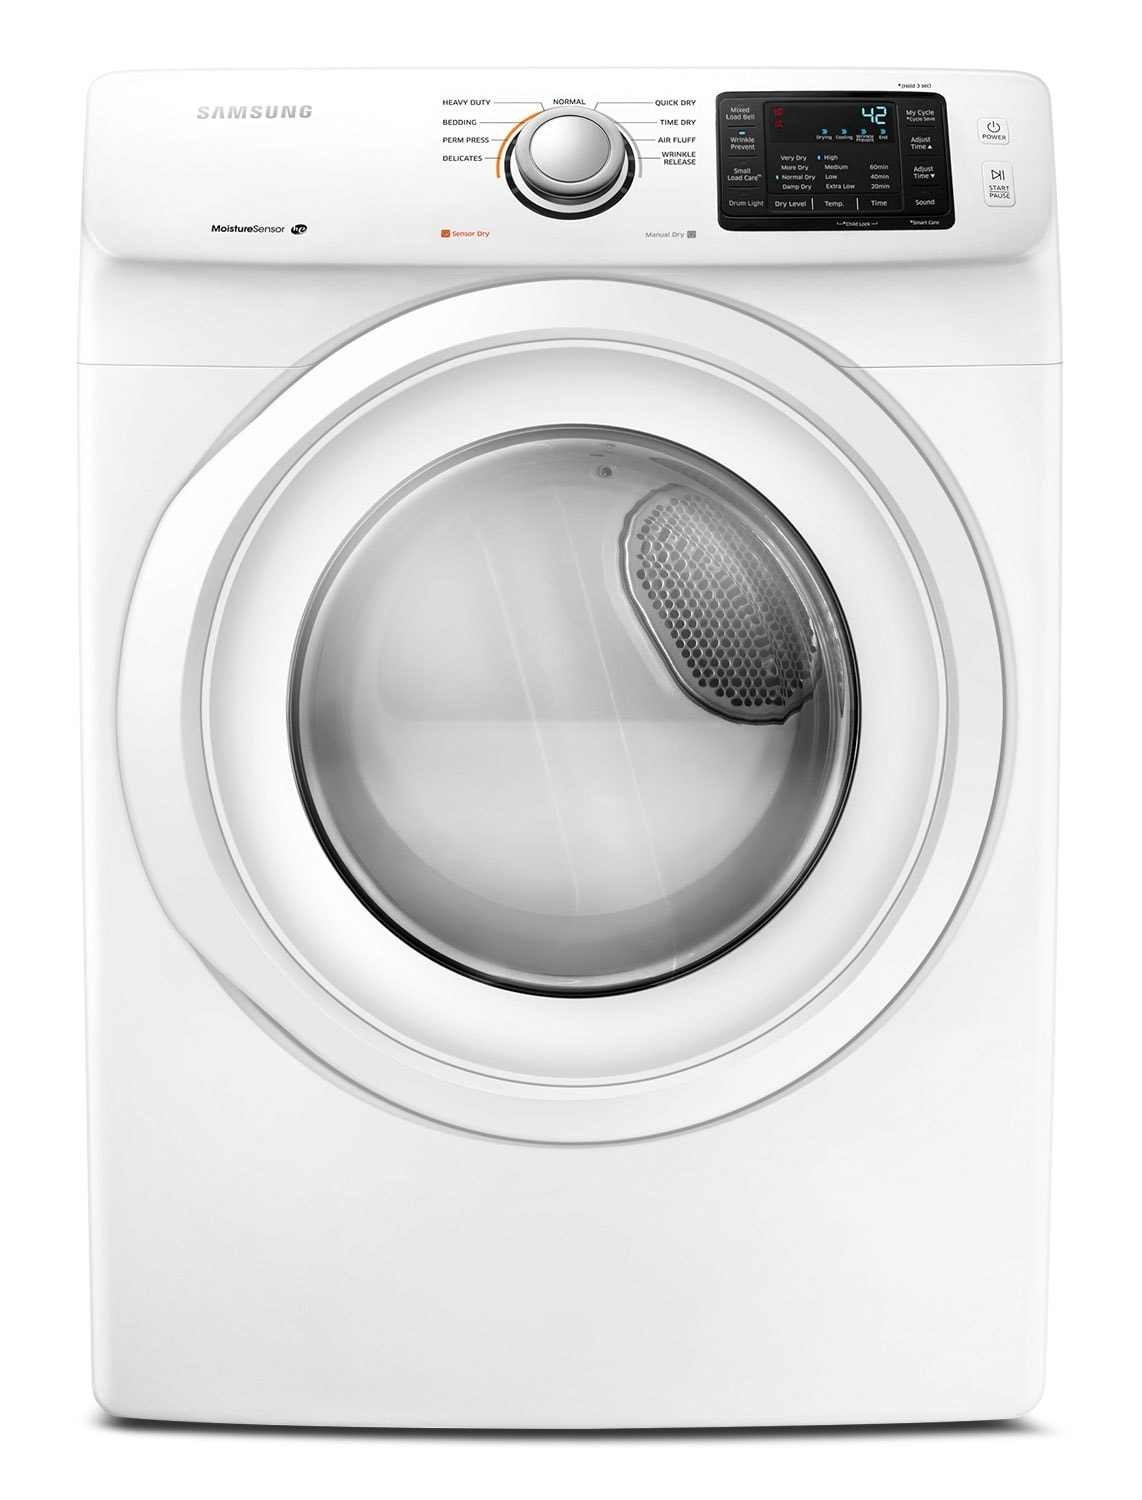 Washers and Dryers - Samsung White Electric Dryer (7.5 Cu. Ft.) - DV42H5000EW